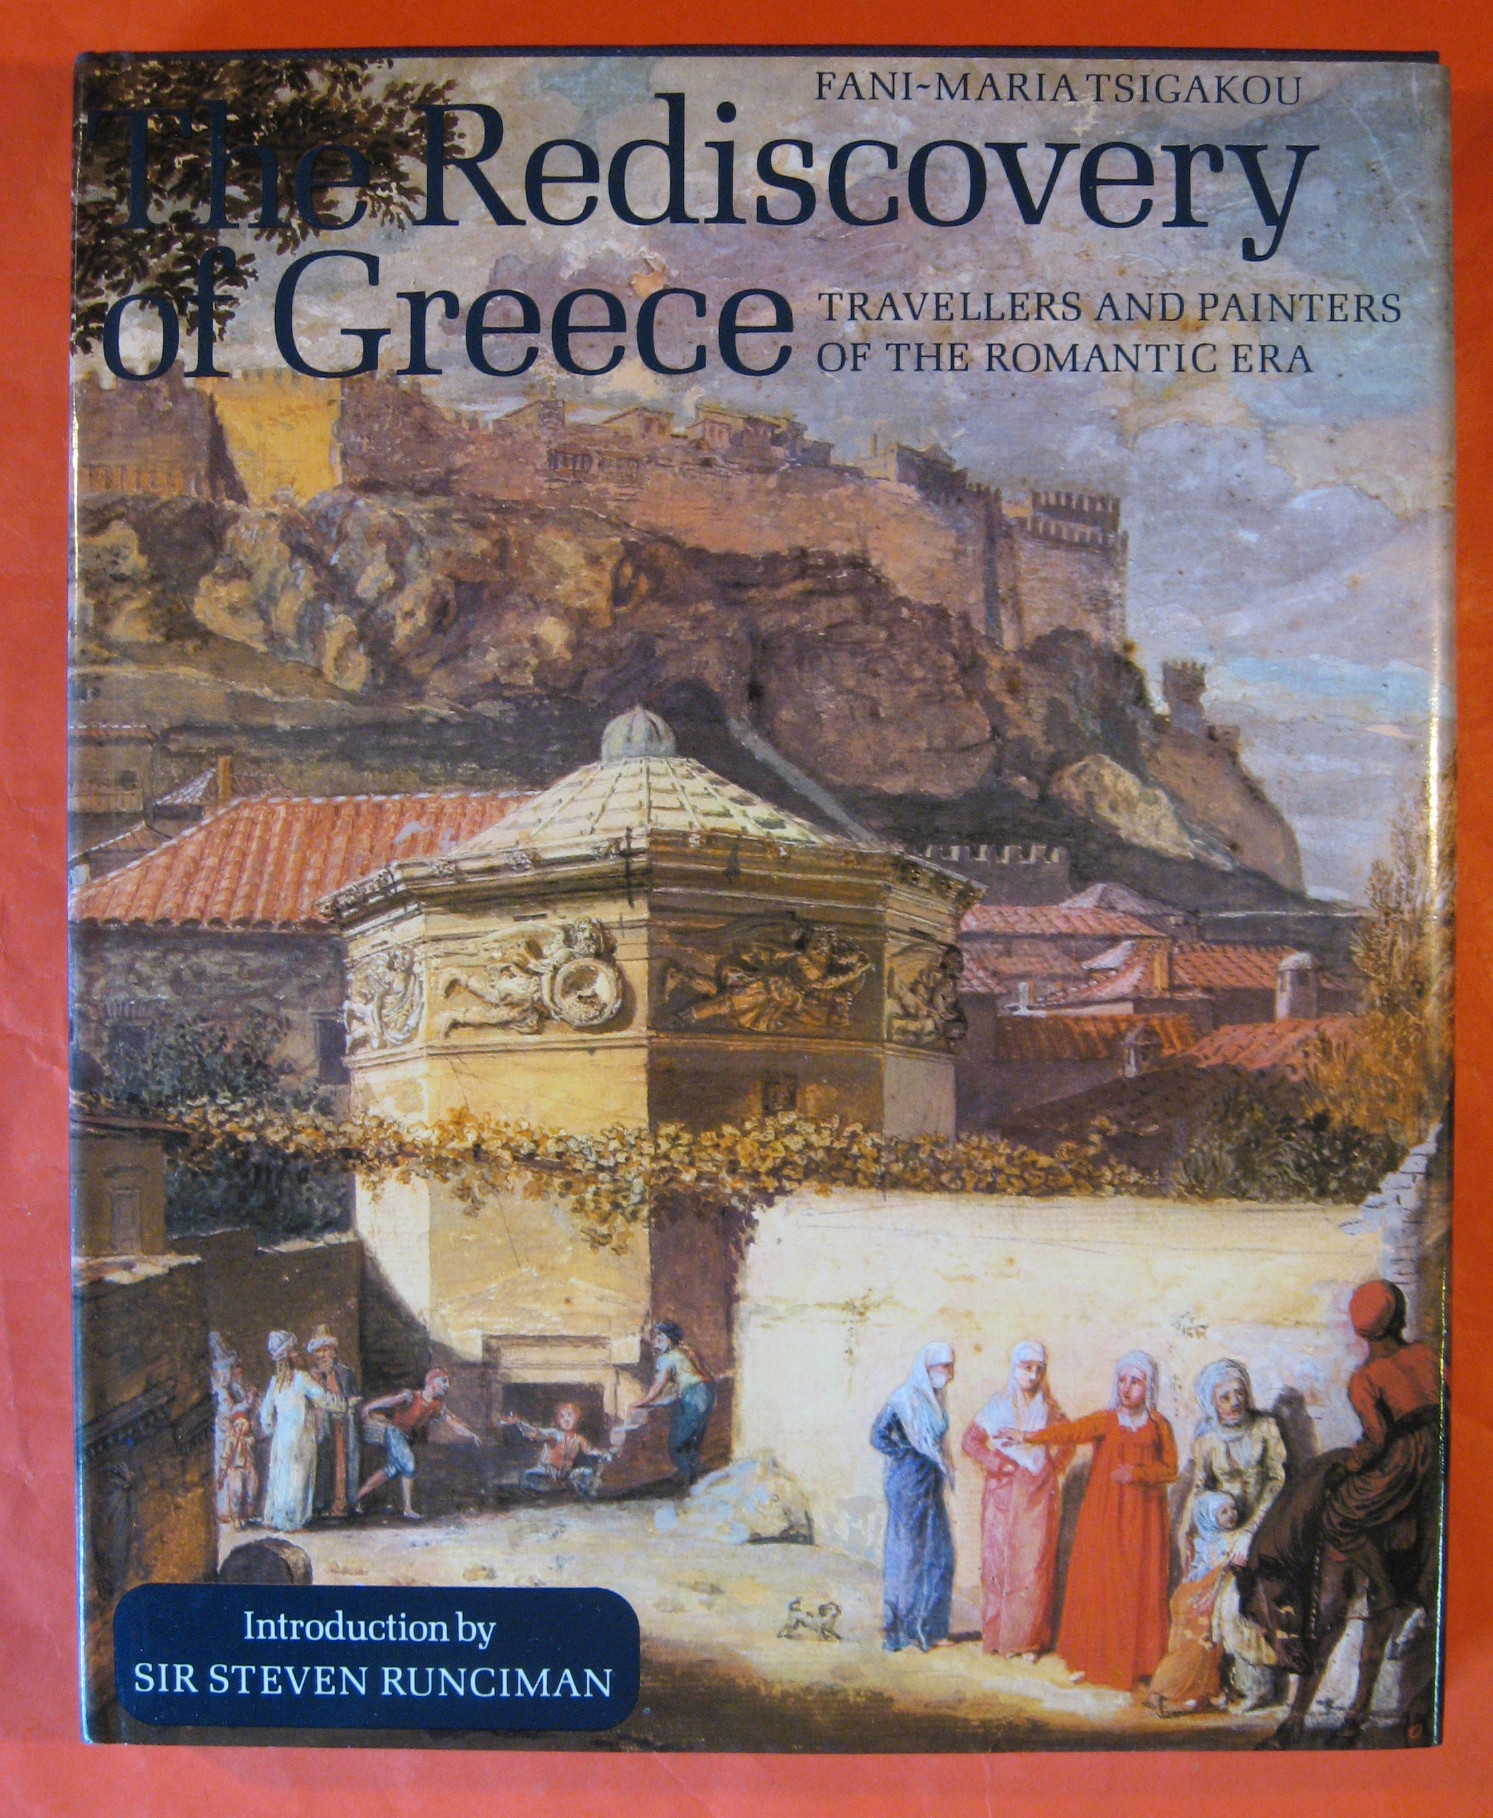 Rediscovery of Greece: Travellers and Painters of the Romantic Era, Tsigakou, Fani-Maria